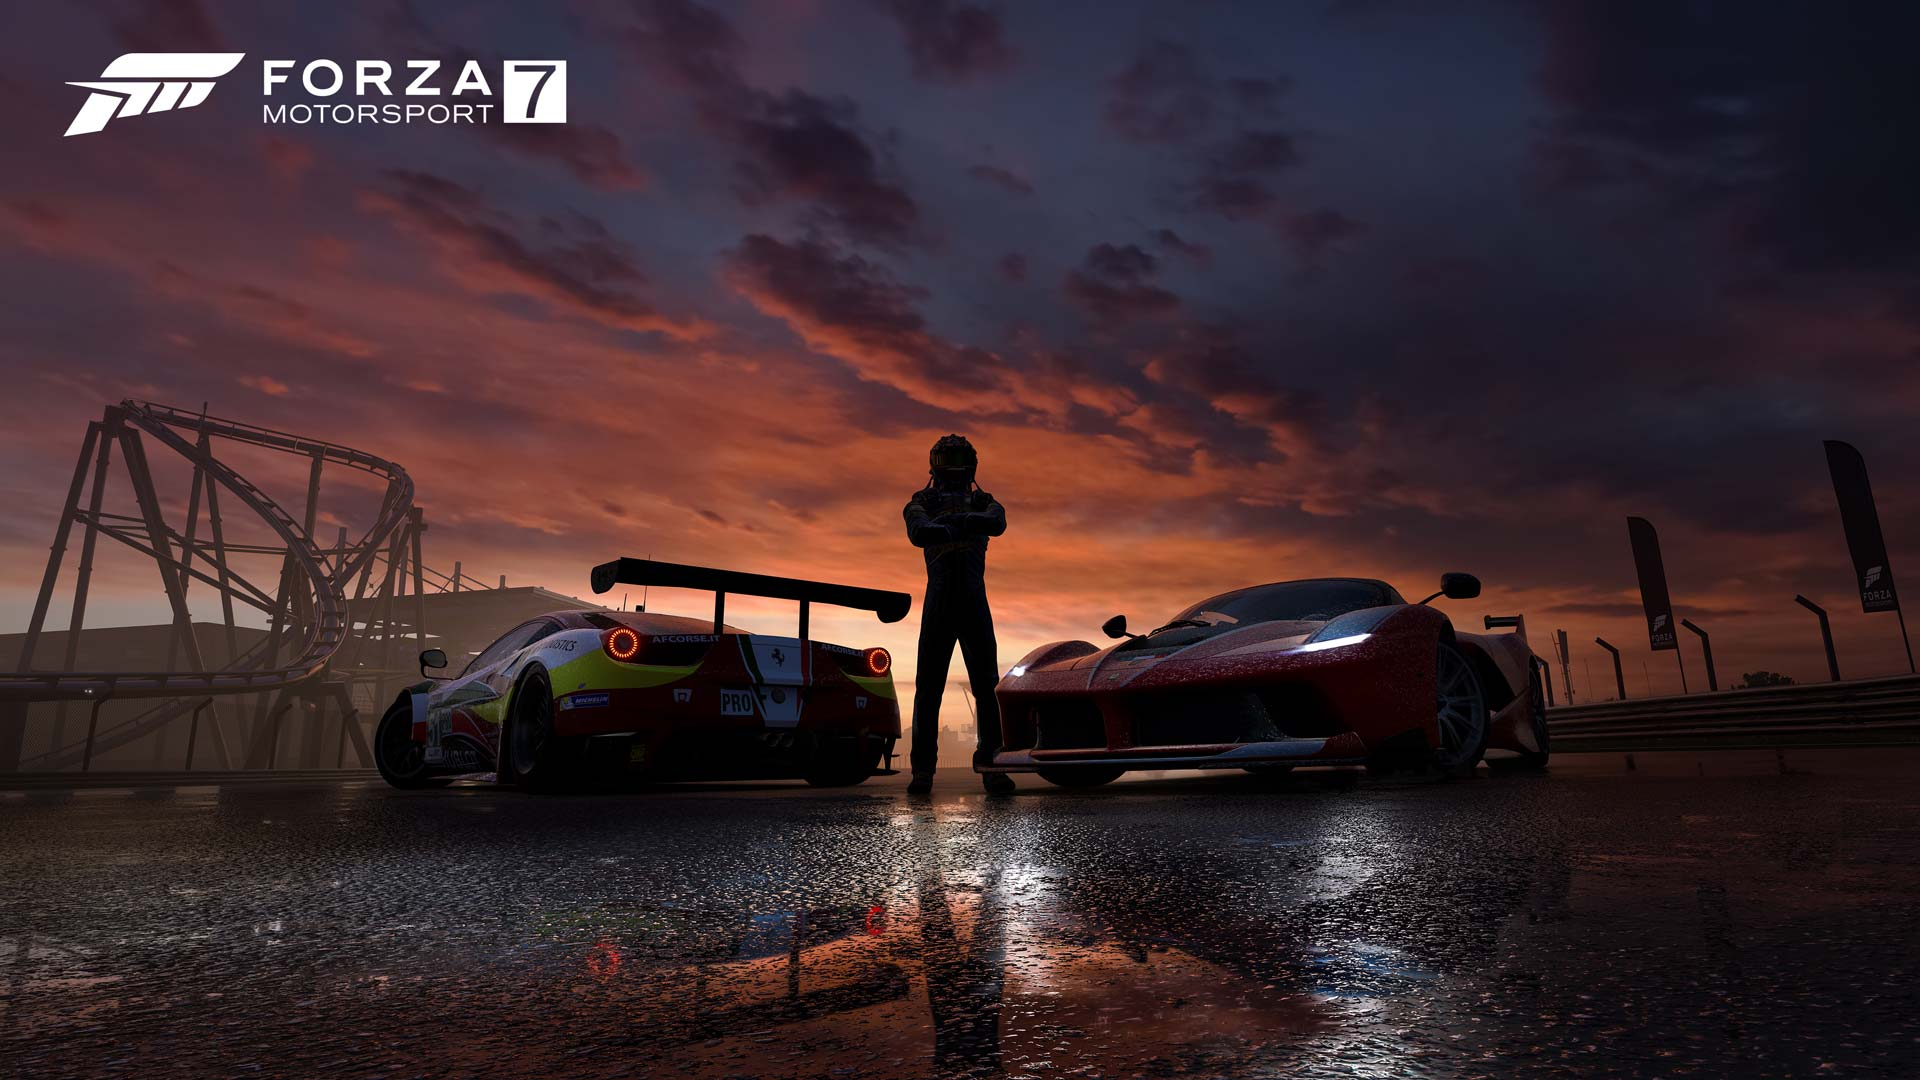 Place 5 out of 10: Forza Motorsport 7